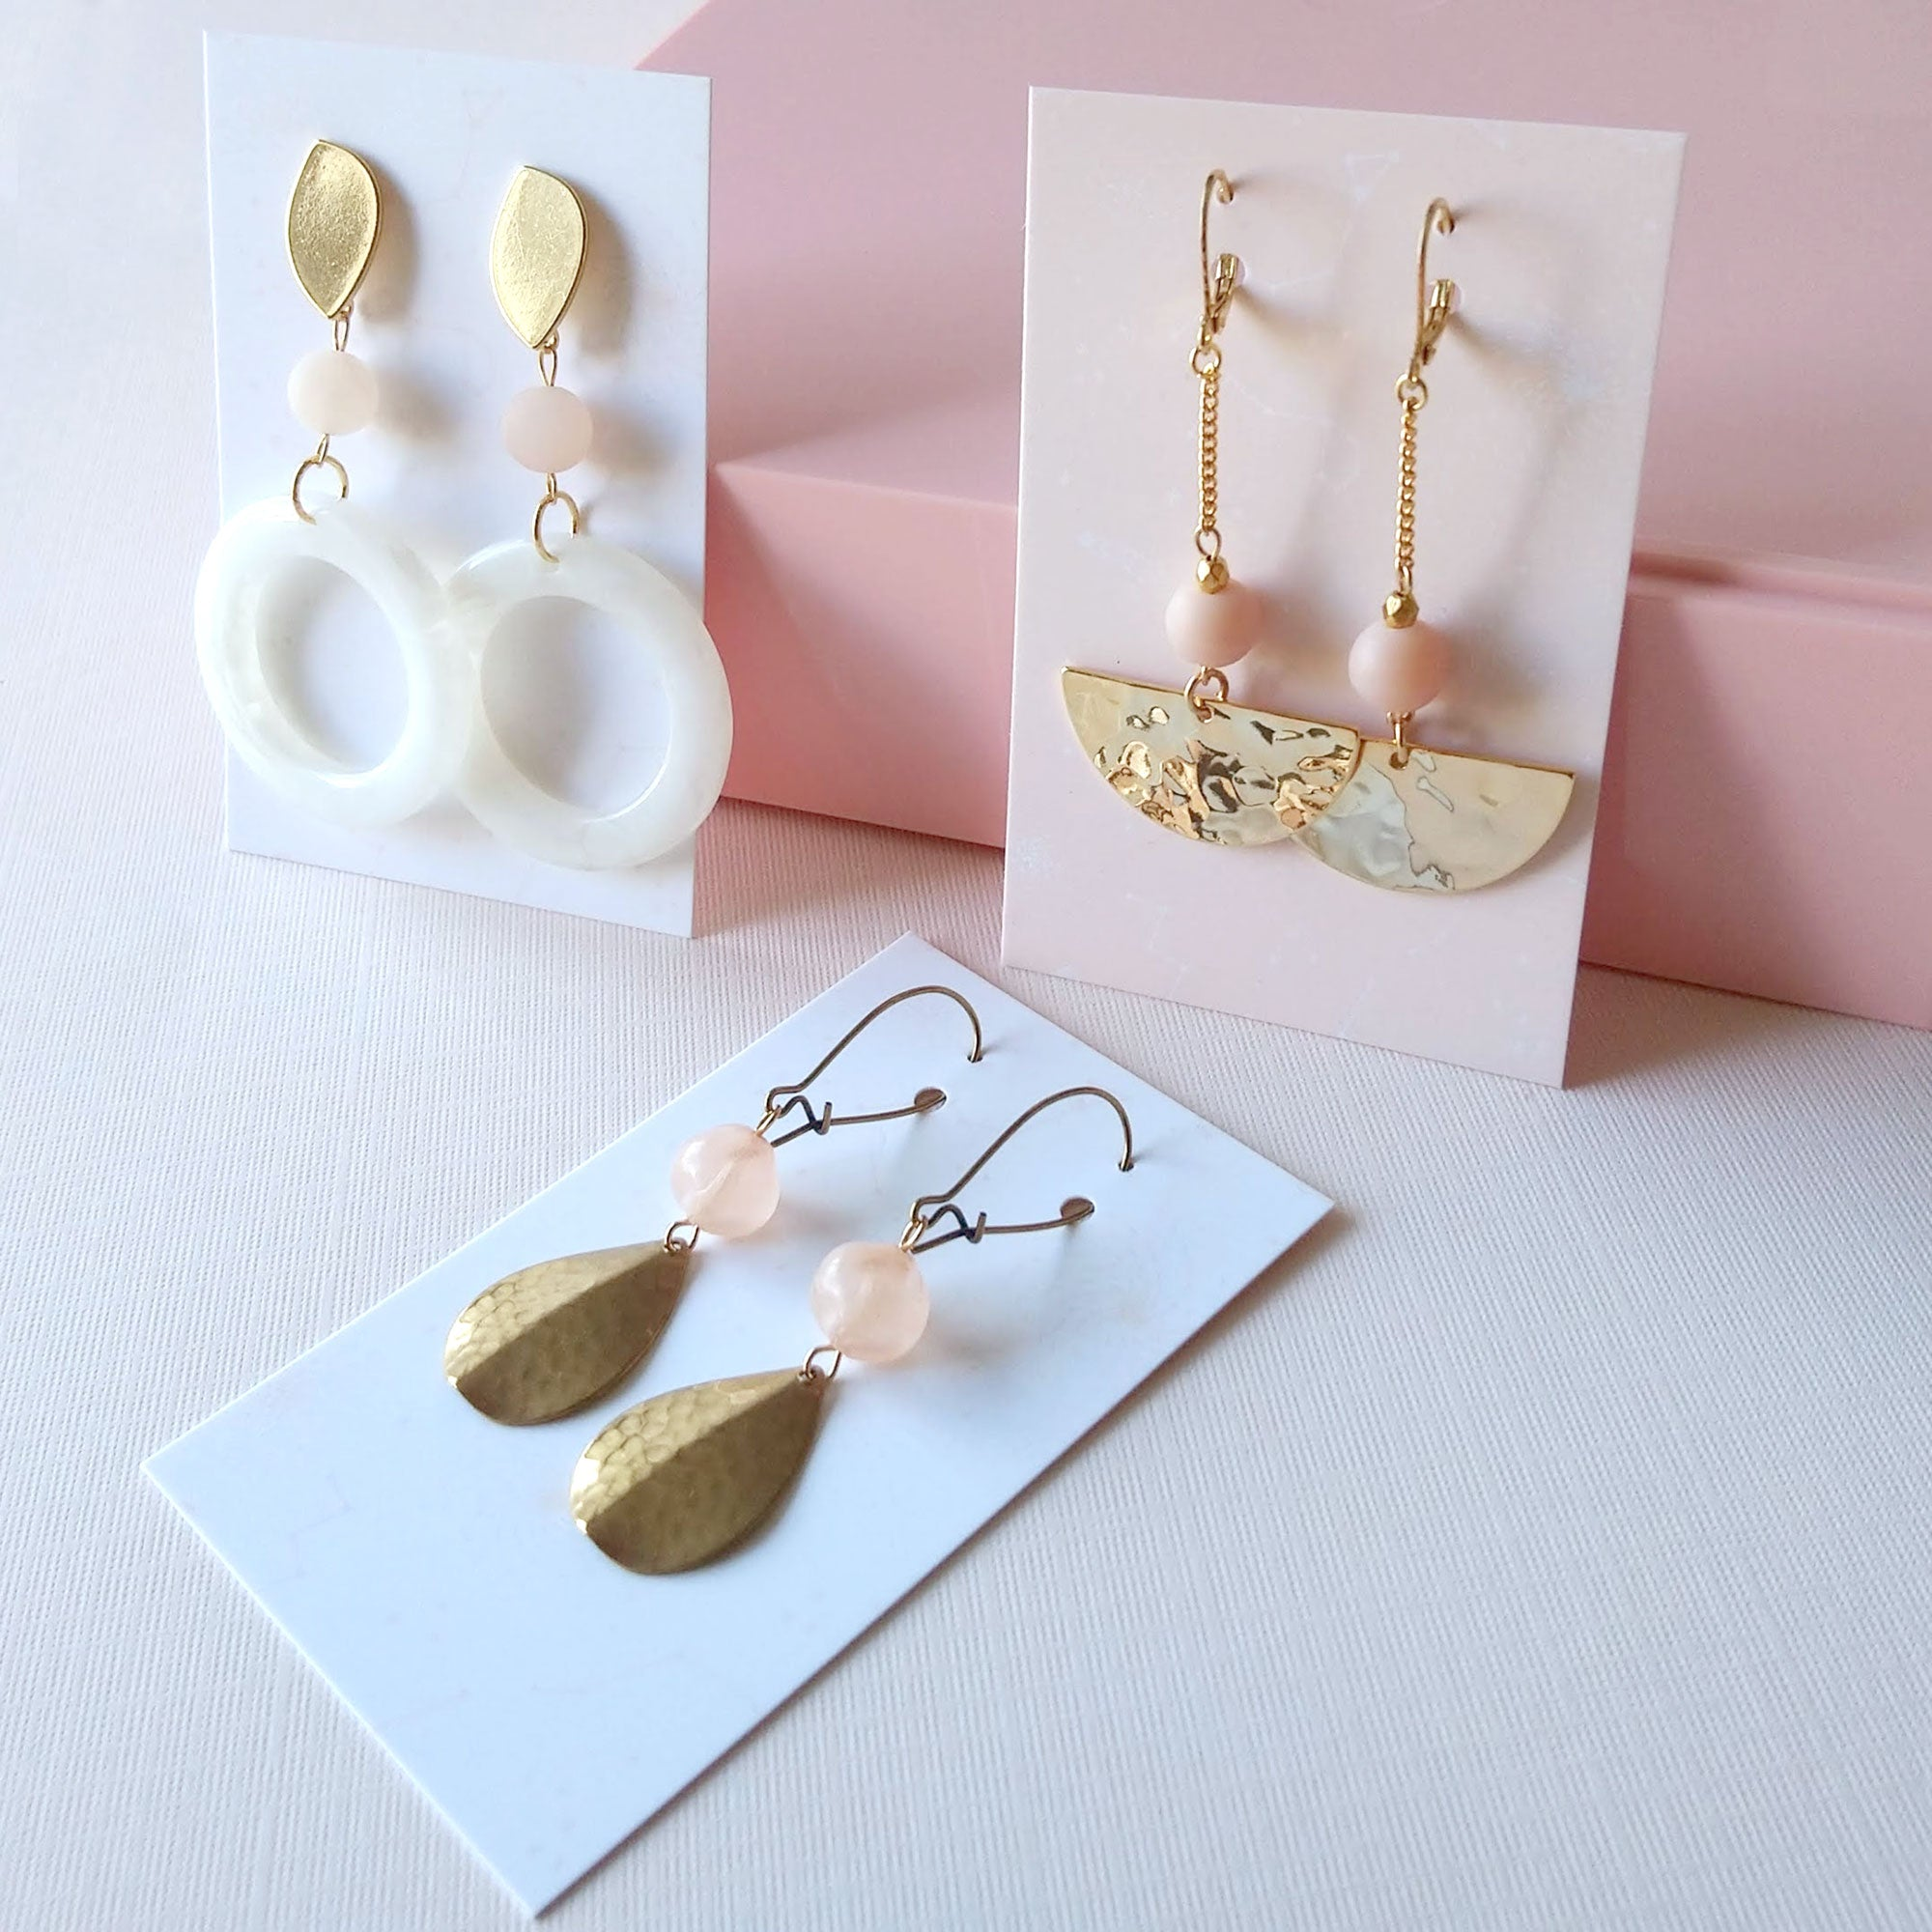 Sandrine Devost Jewelry pink and gold nude tones